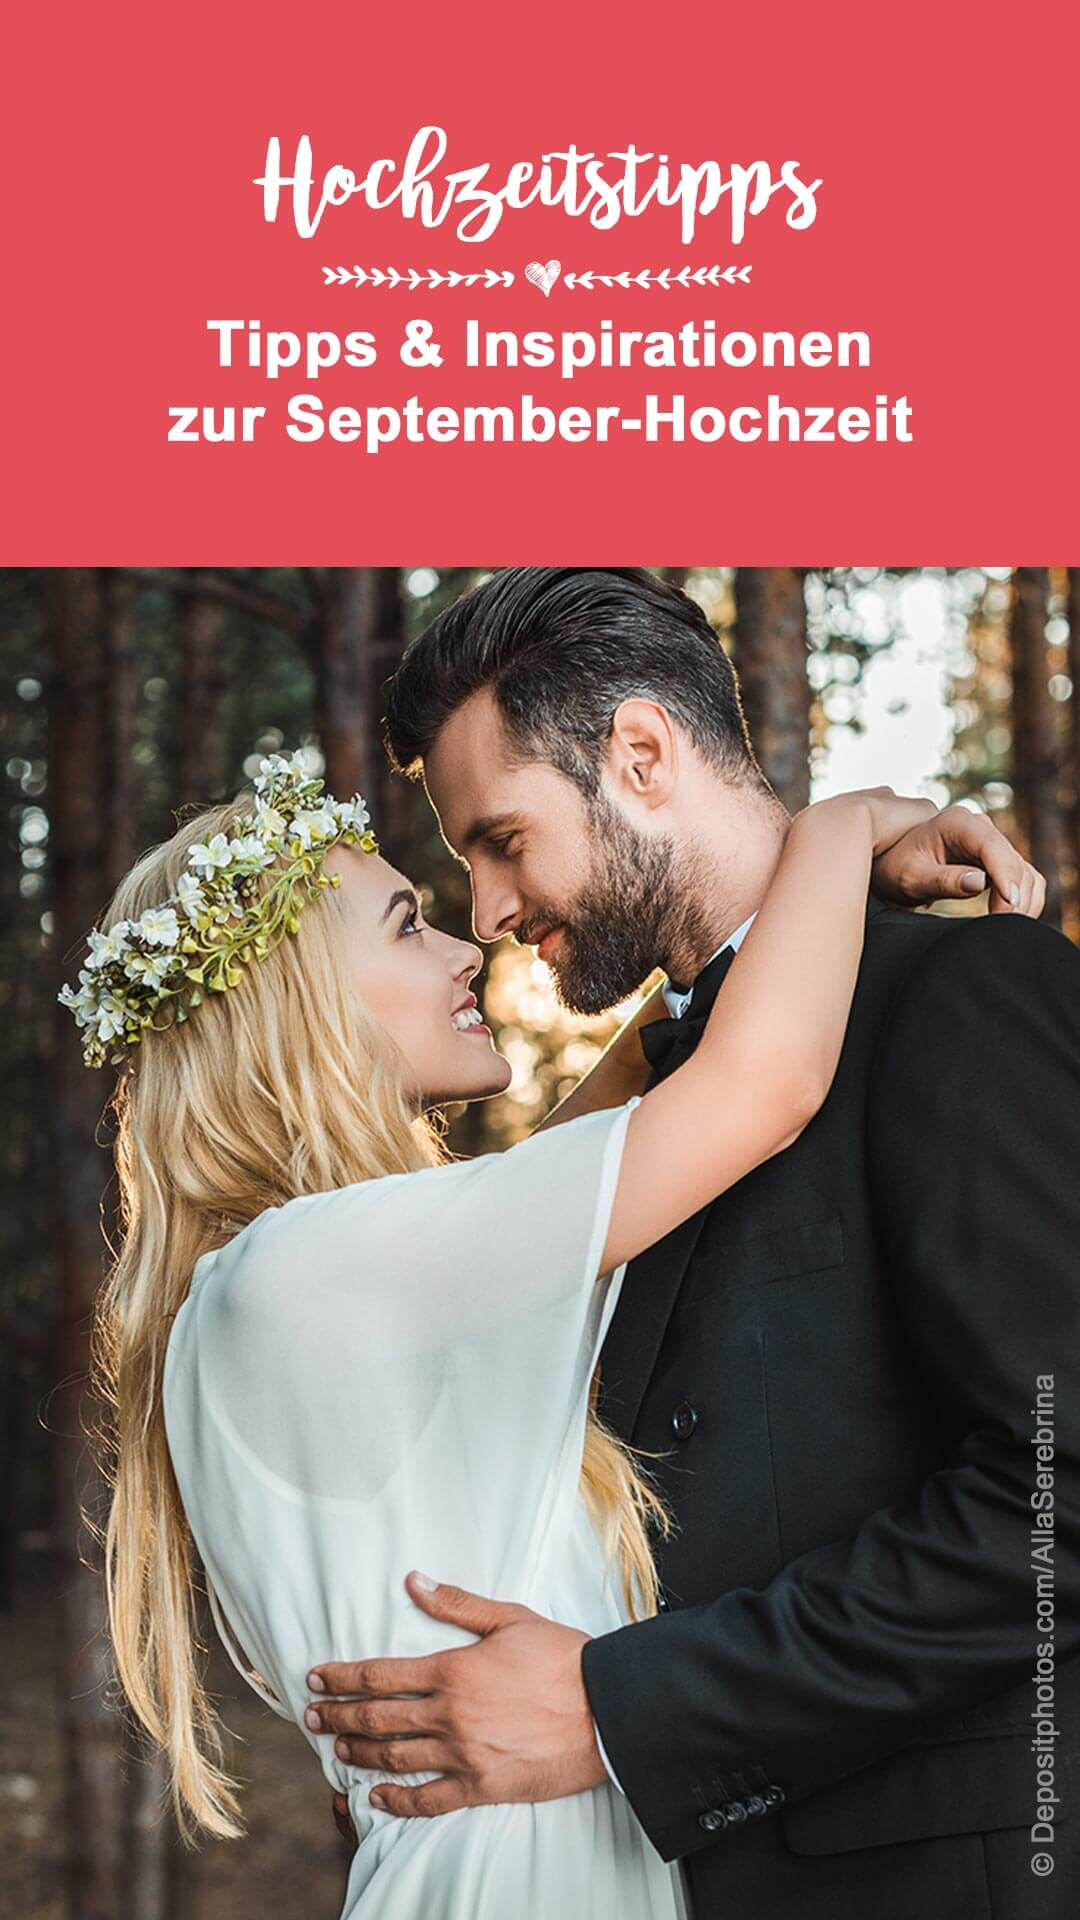 Hochzeit im September Tipps - The trends for your celebration in late summer